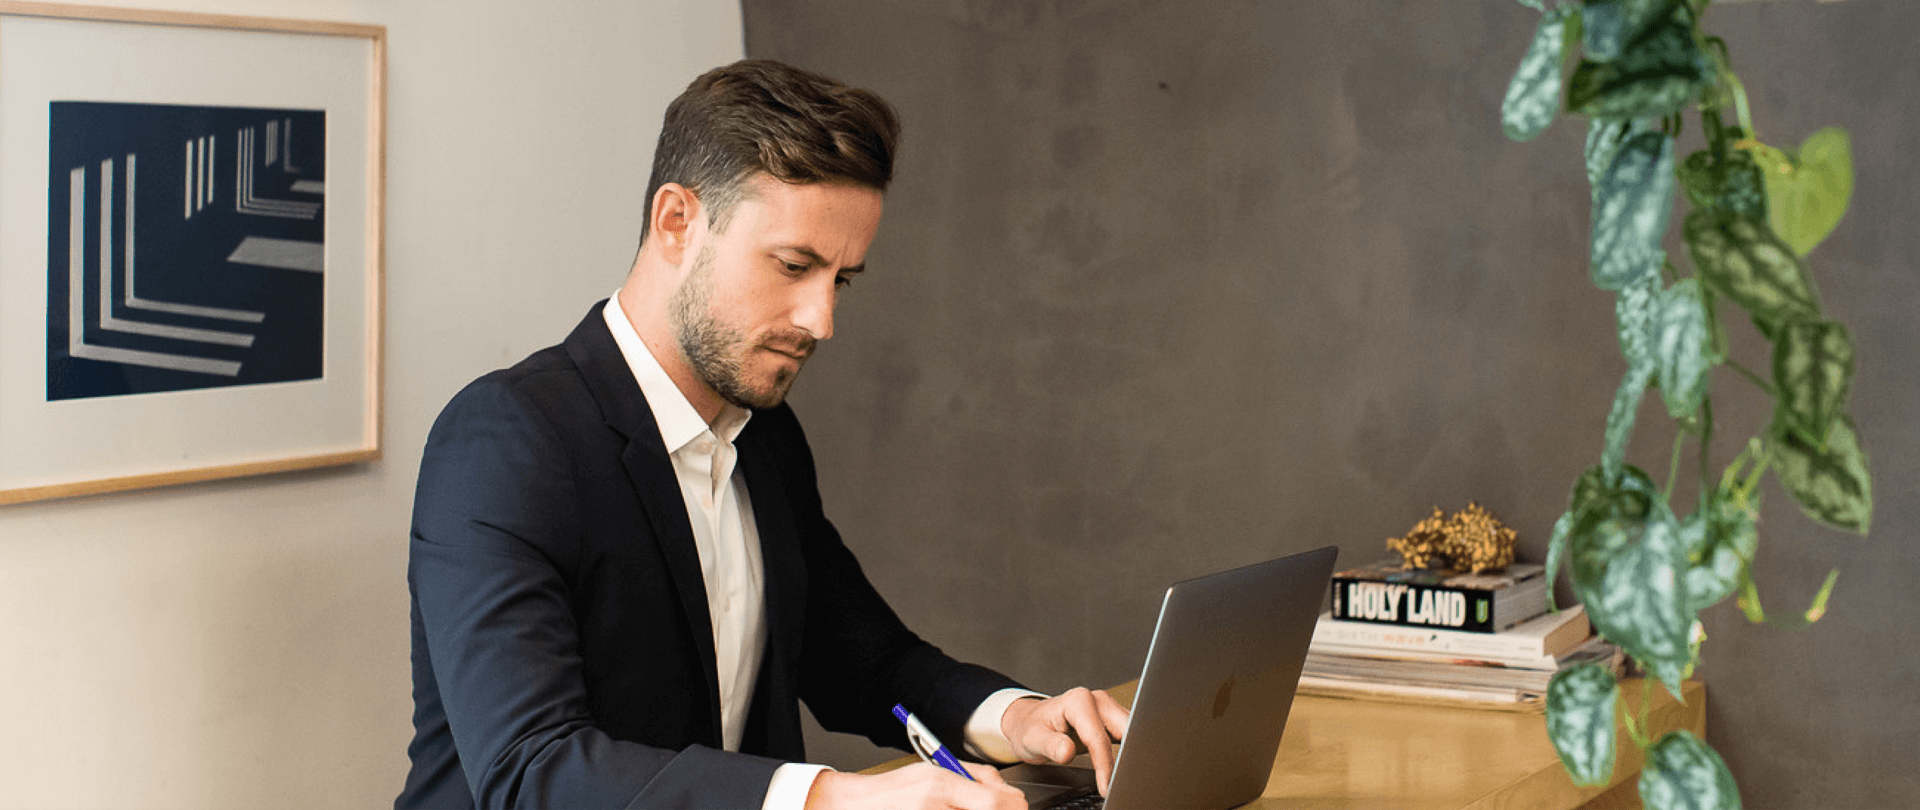 business man woking on a lap top